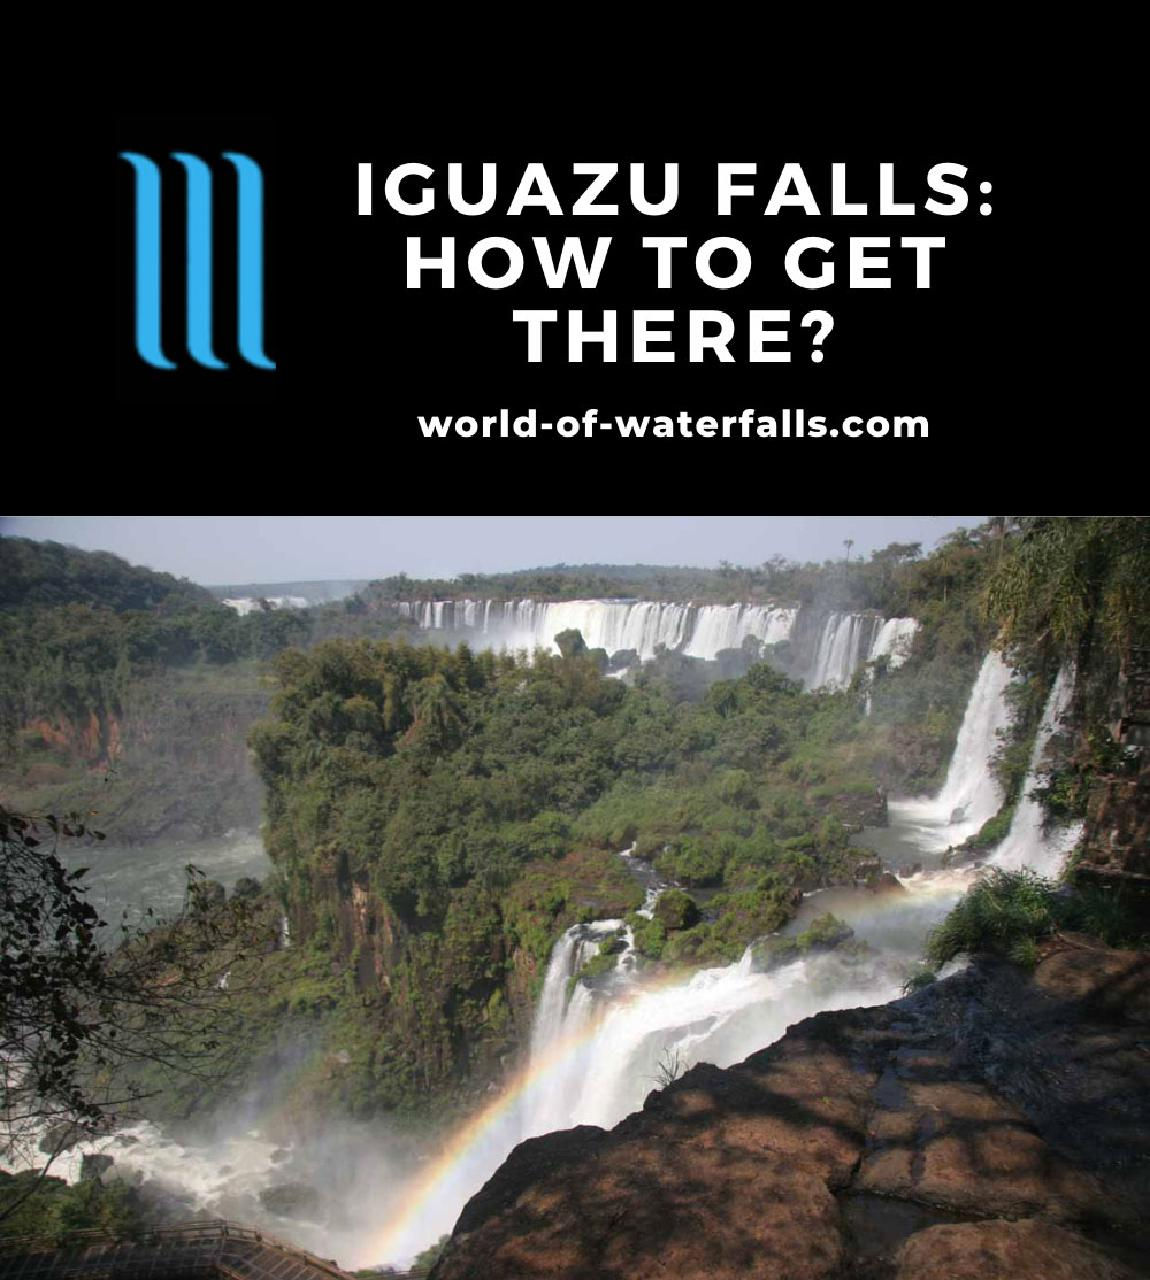 Iguazu Falls: How to Get There?